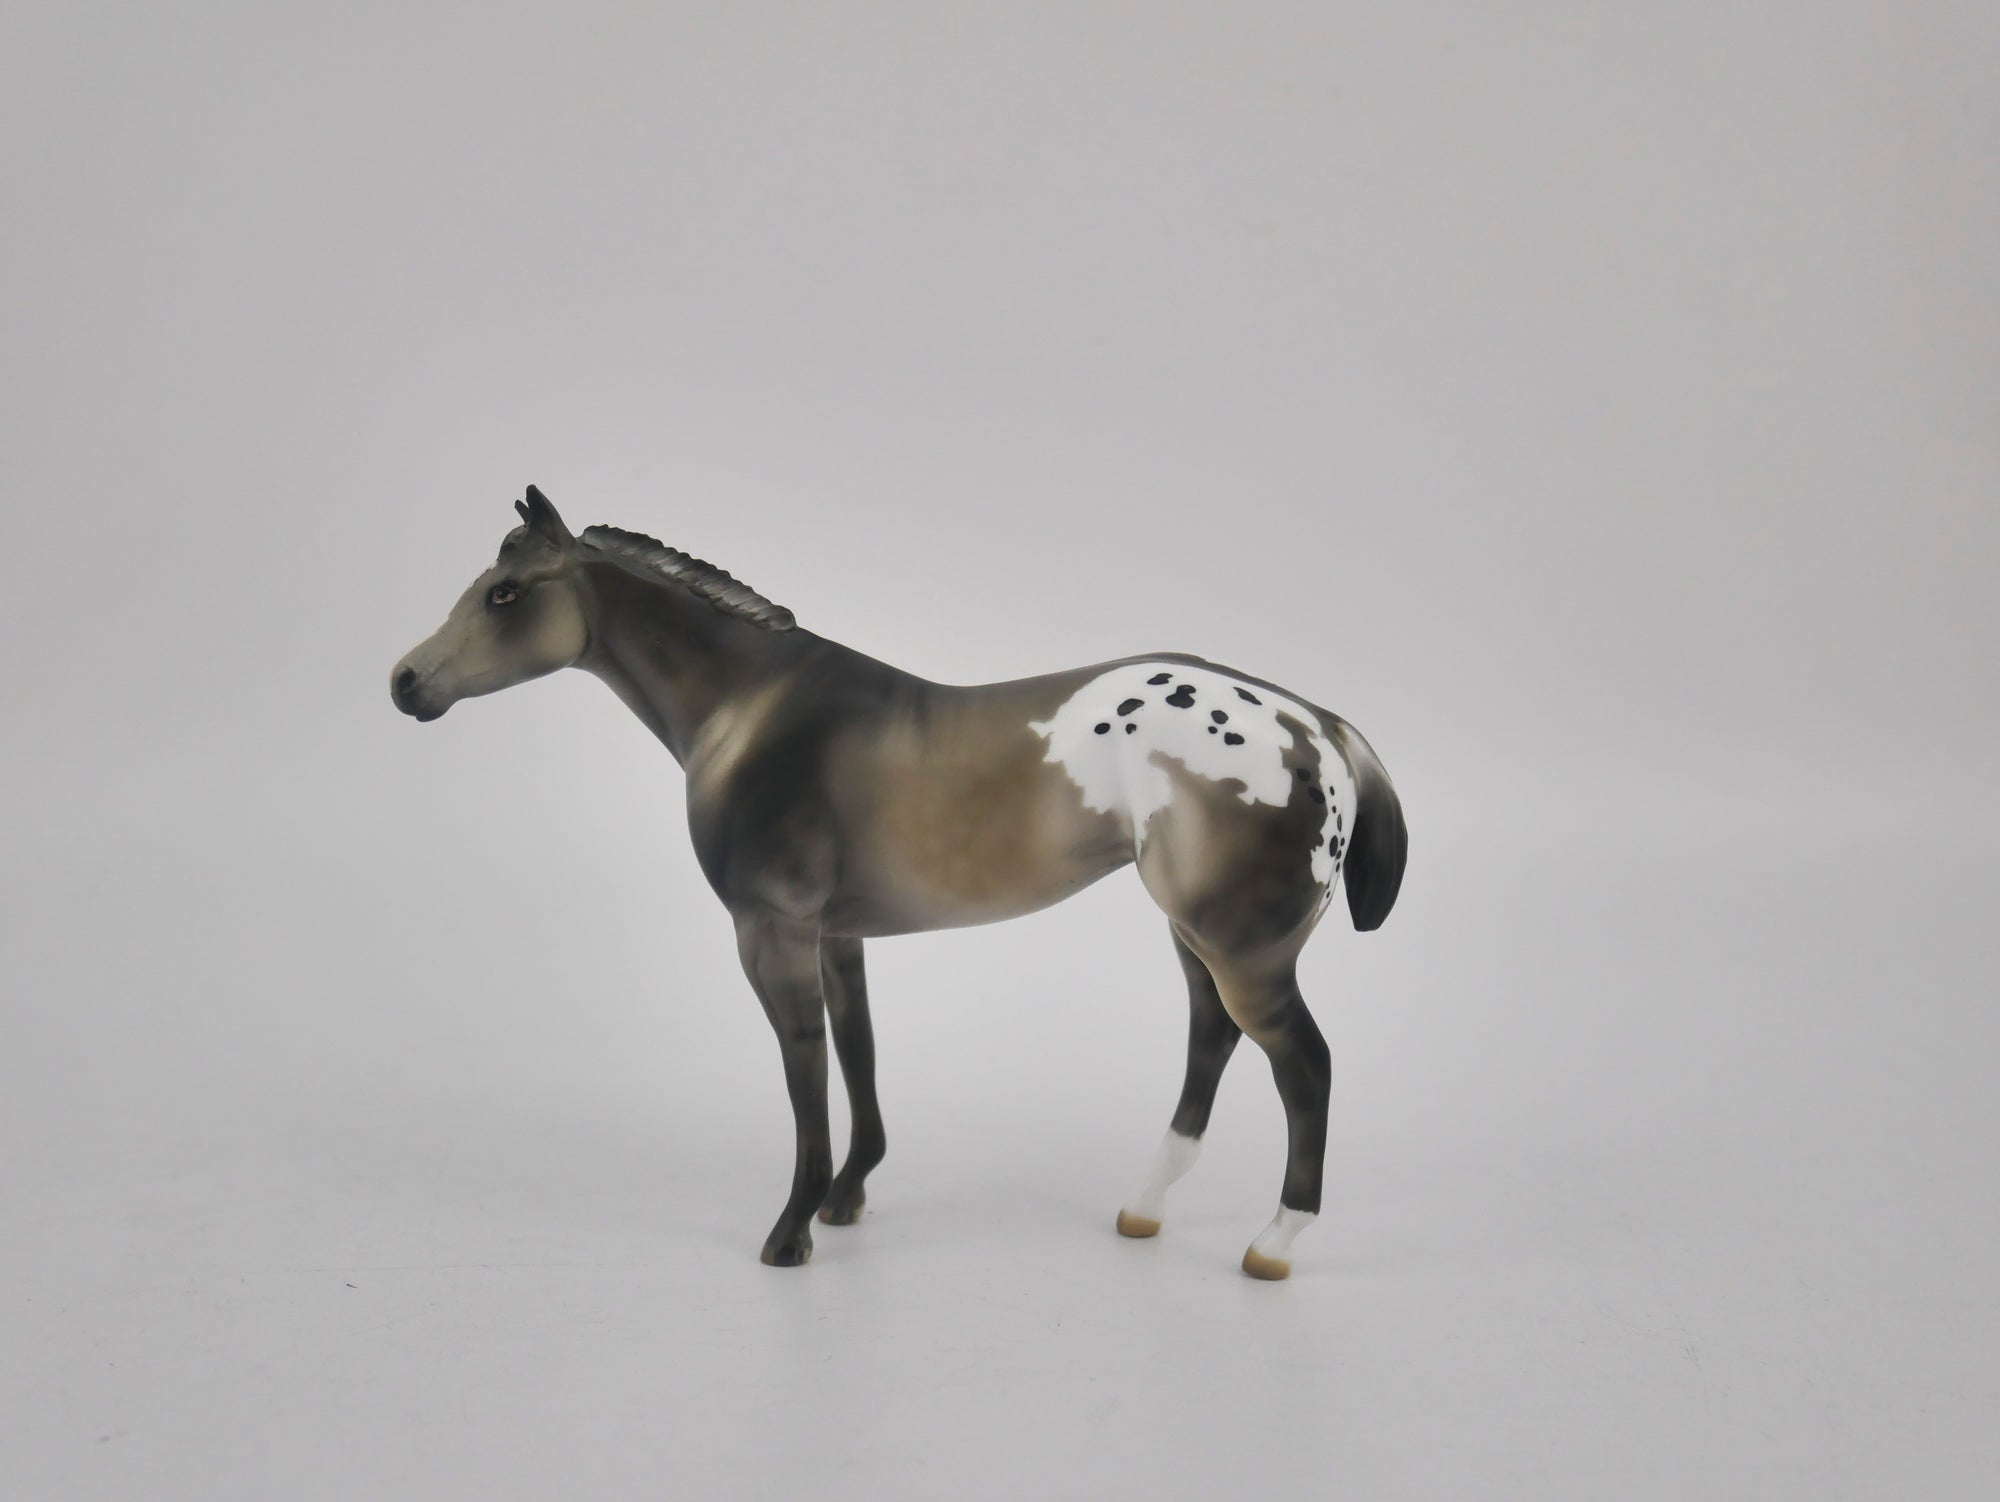 MINI ME FRIDA - LE-20 SILVER GRULLA APPALOOSA FRIDAY RELEASE BY  JULIE KEIM EQ 2020